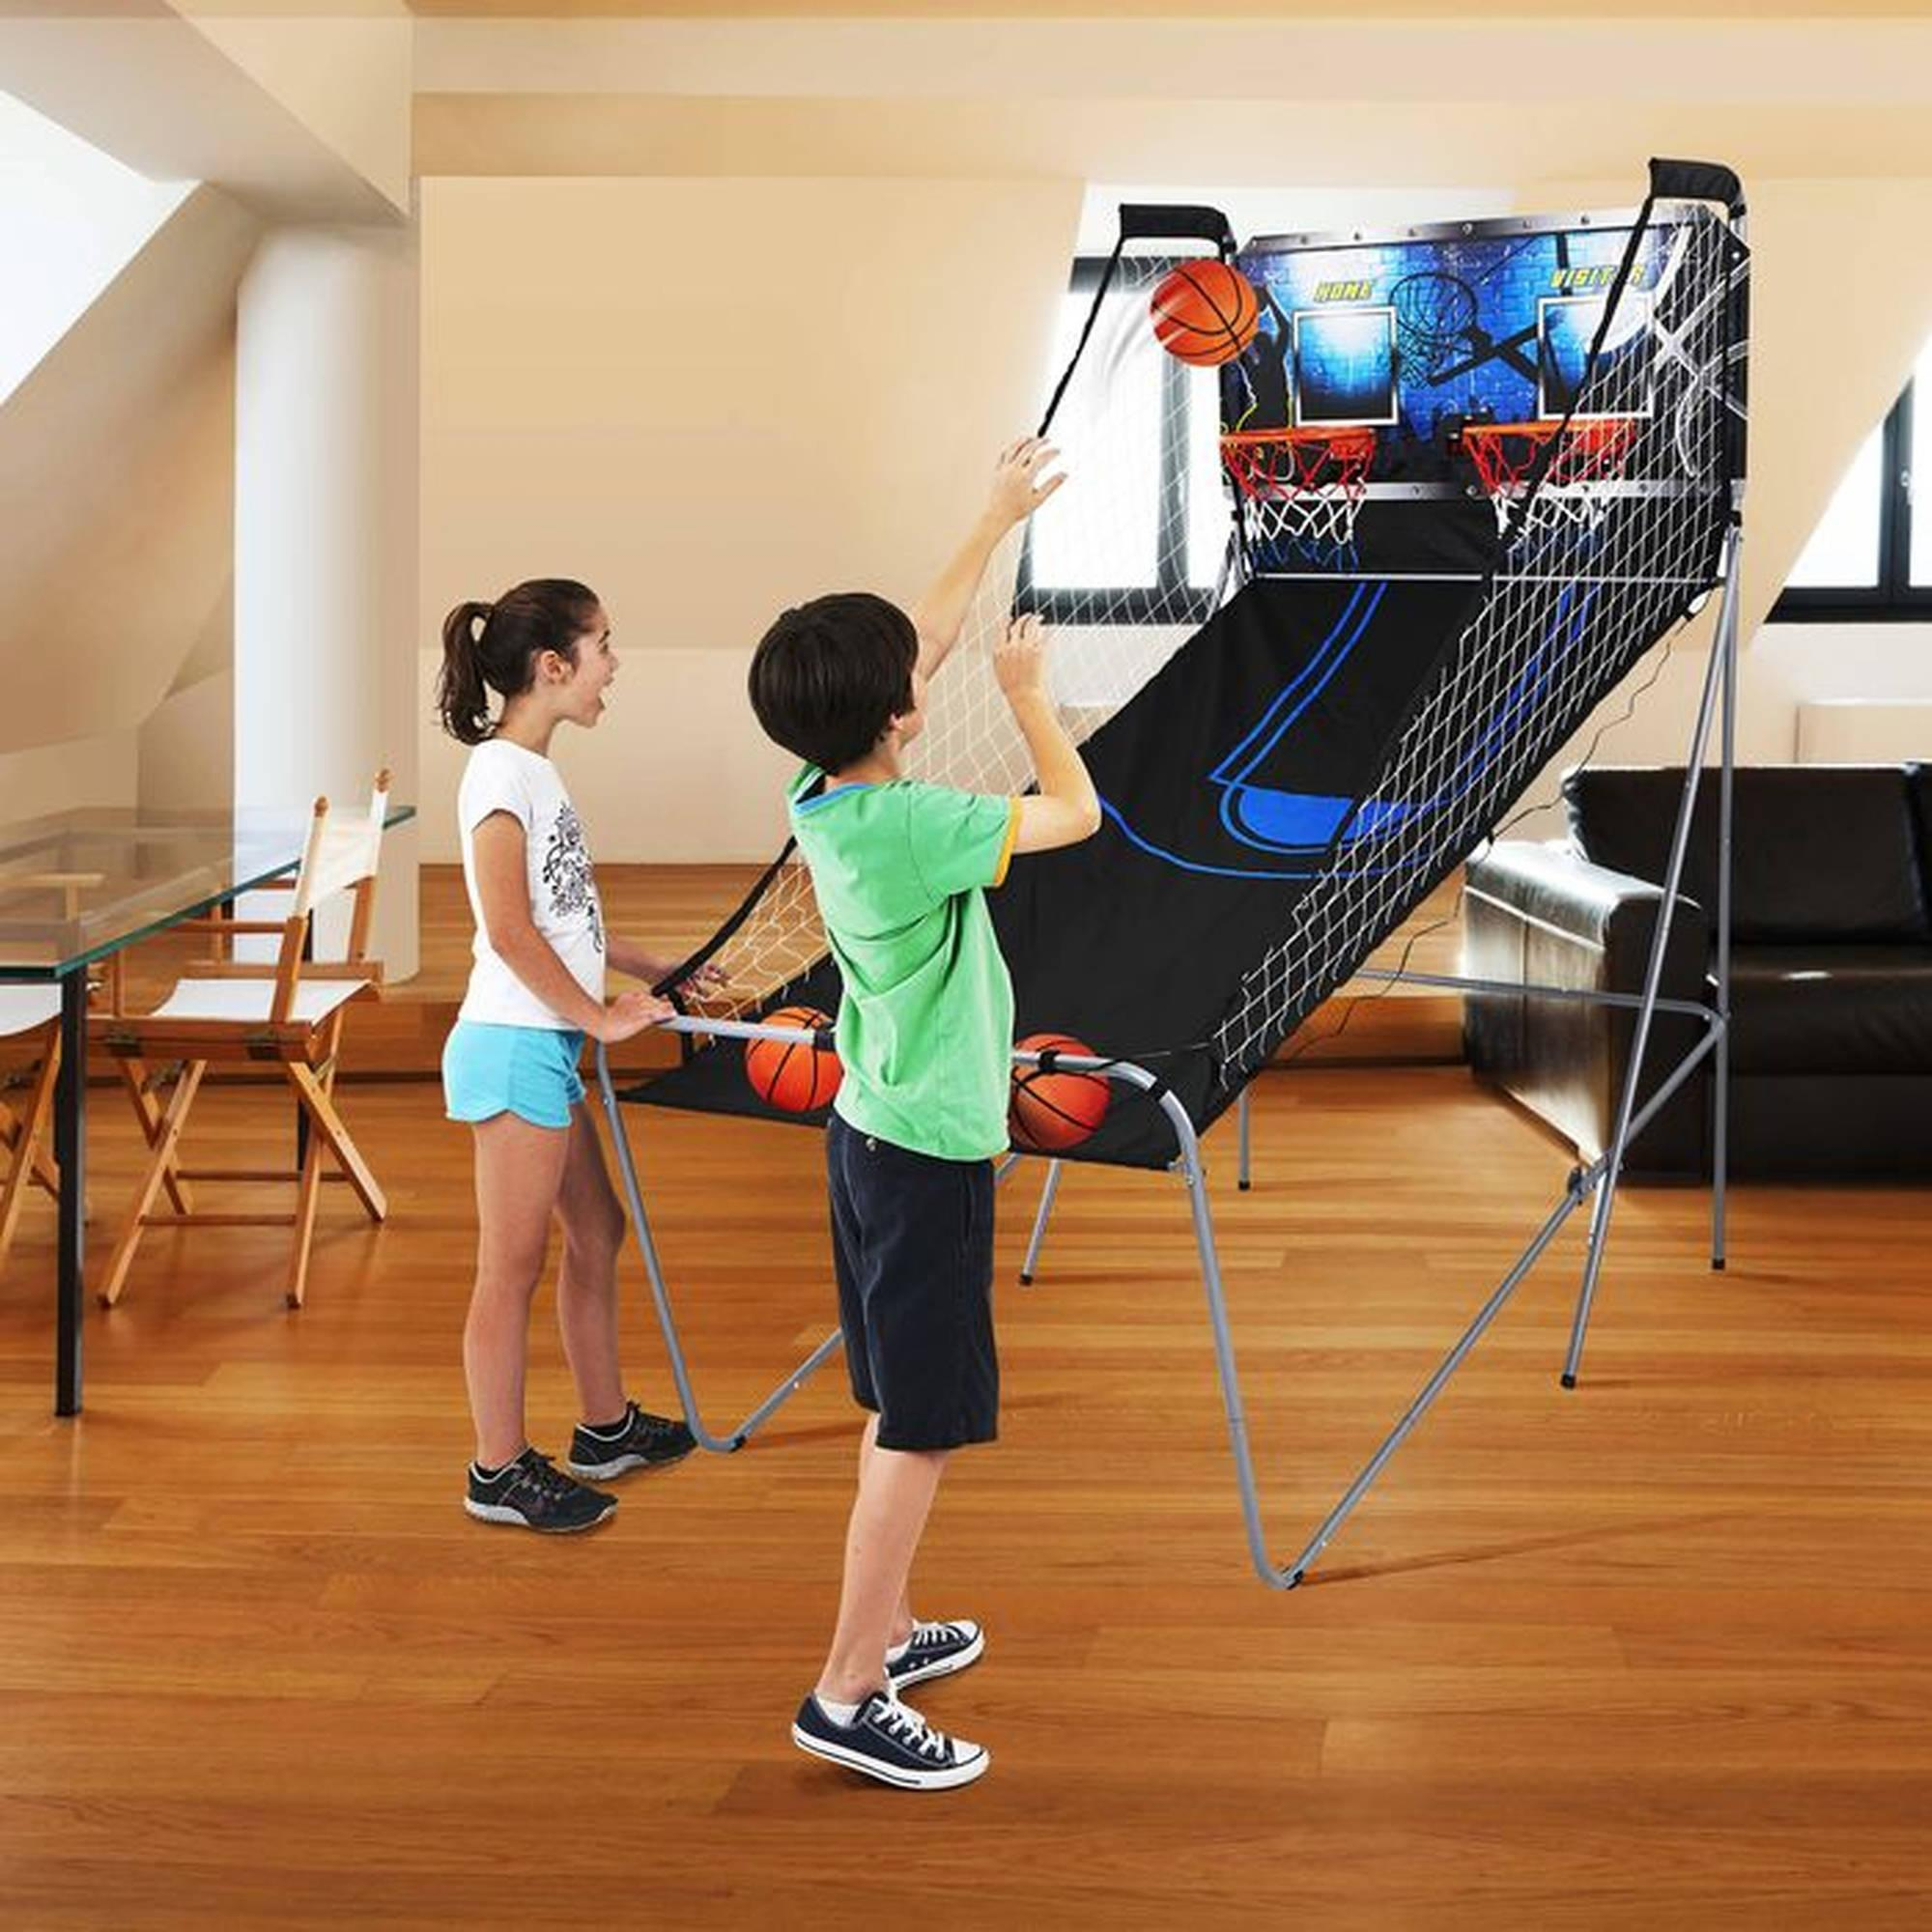 MD Sports 2-Player Arcade Basketball Game with 8 Options